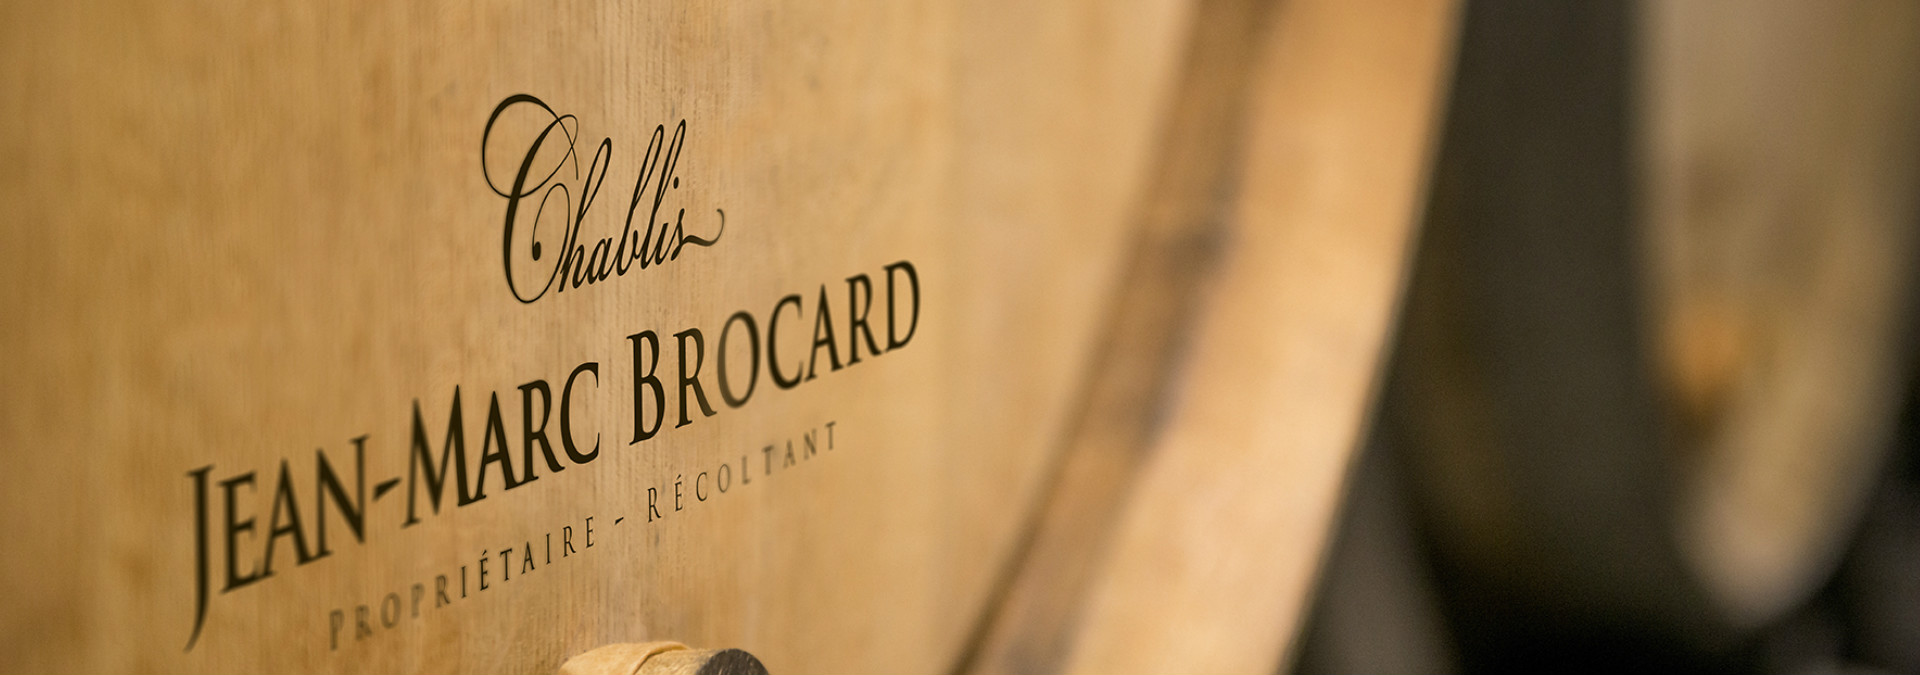 Domaine Famille Brocard